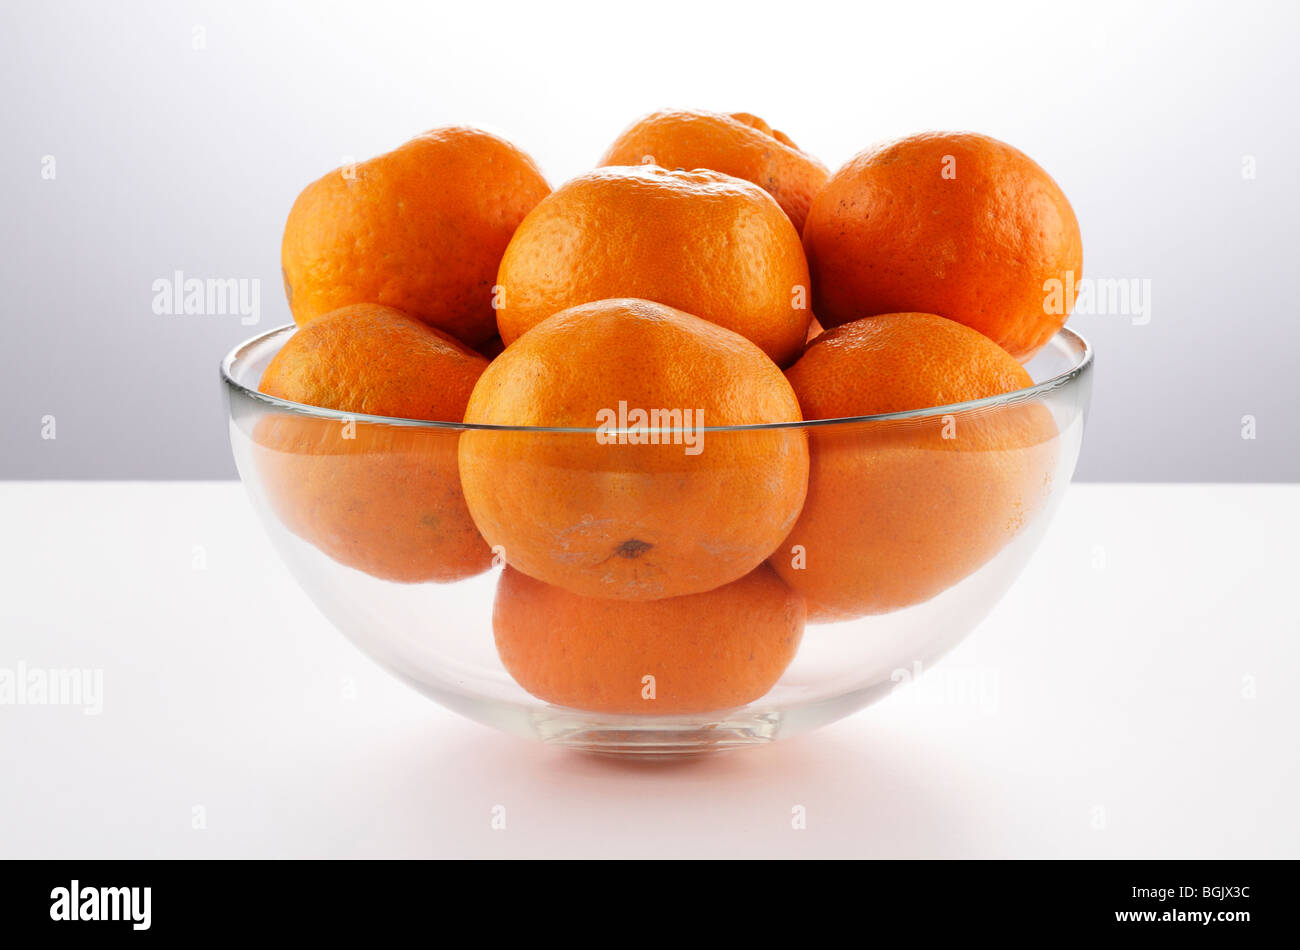 Mandarin oranges in a glass bowl on a white table with a gradient background - Stock Image